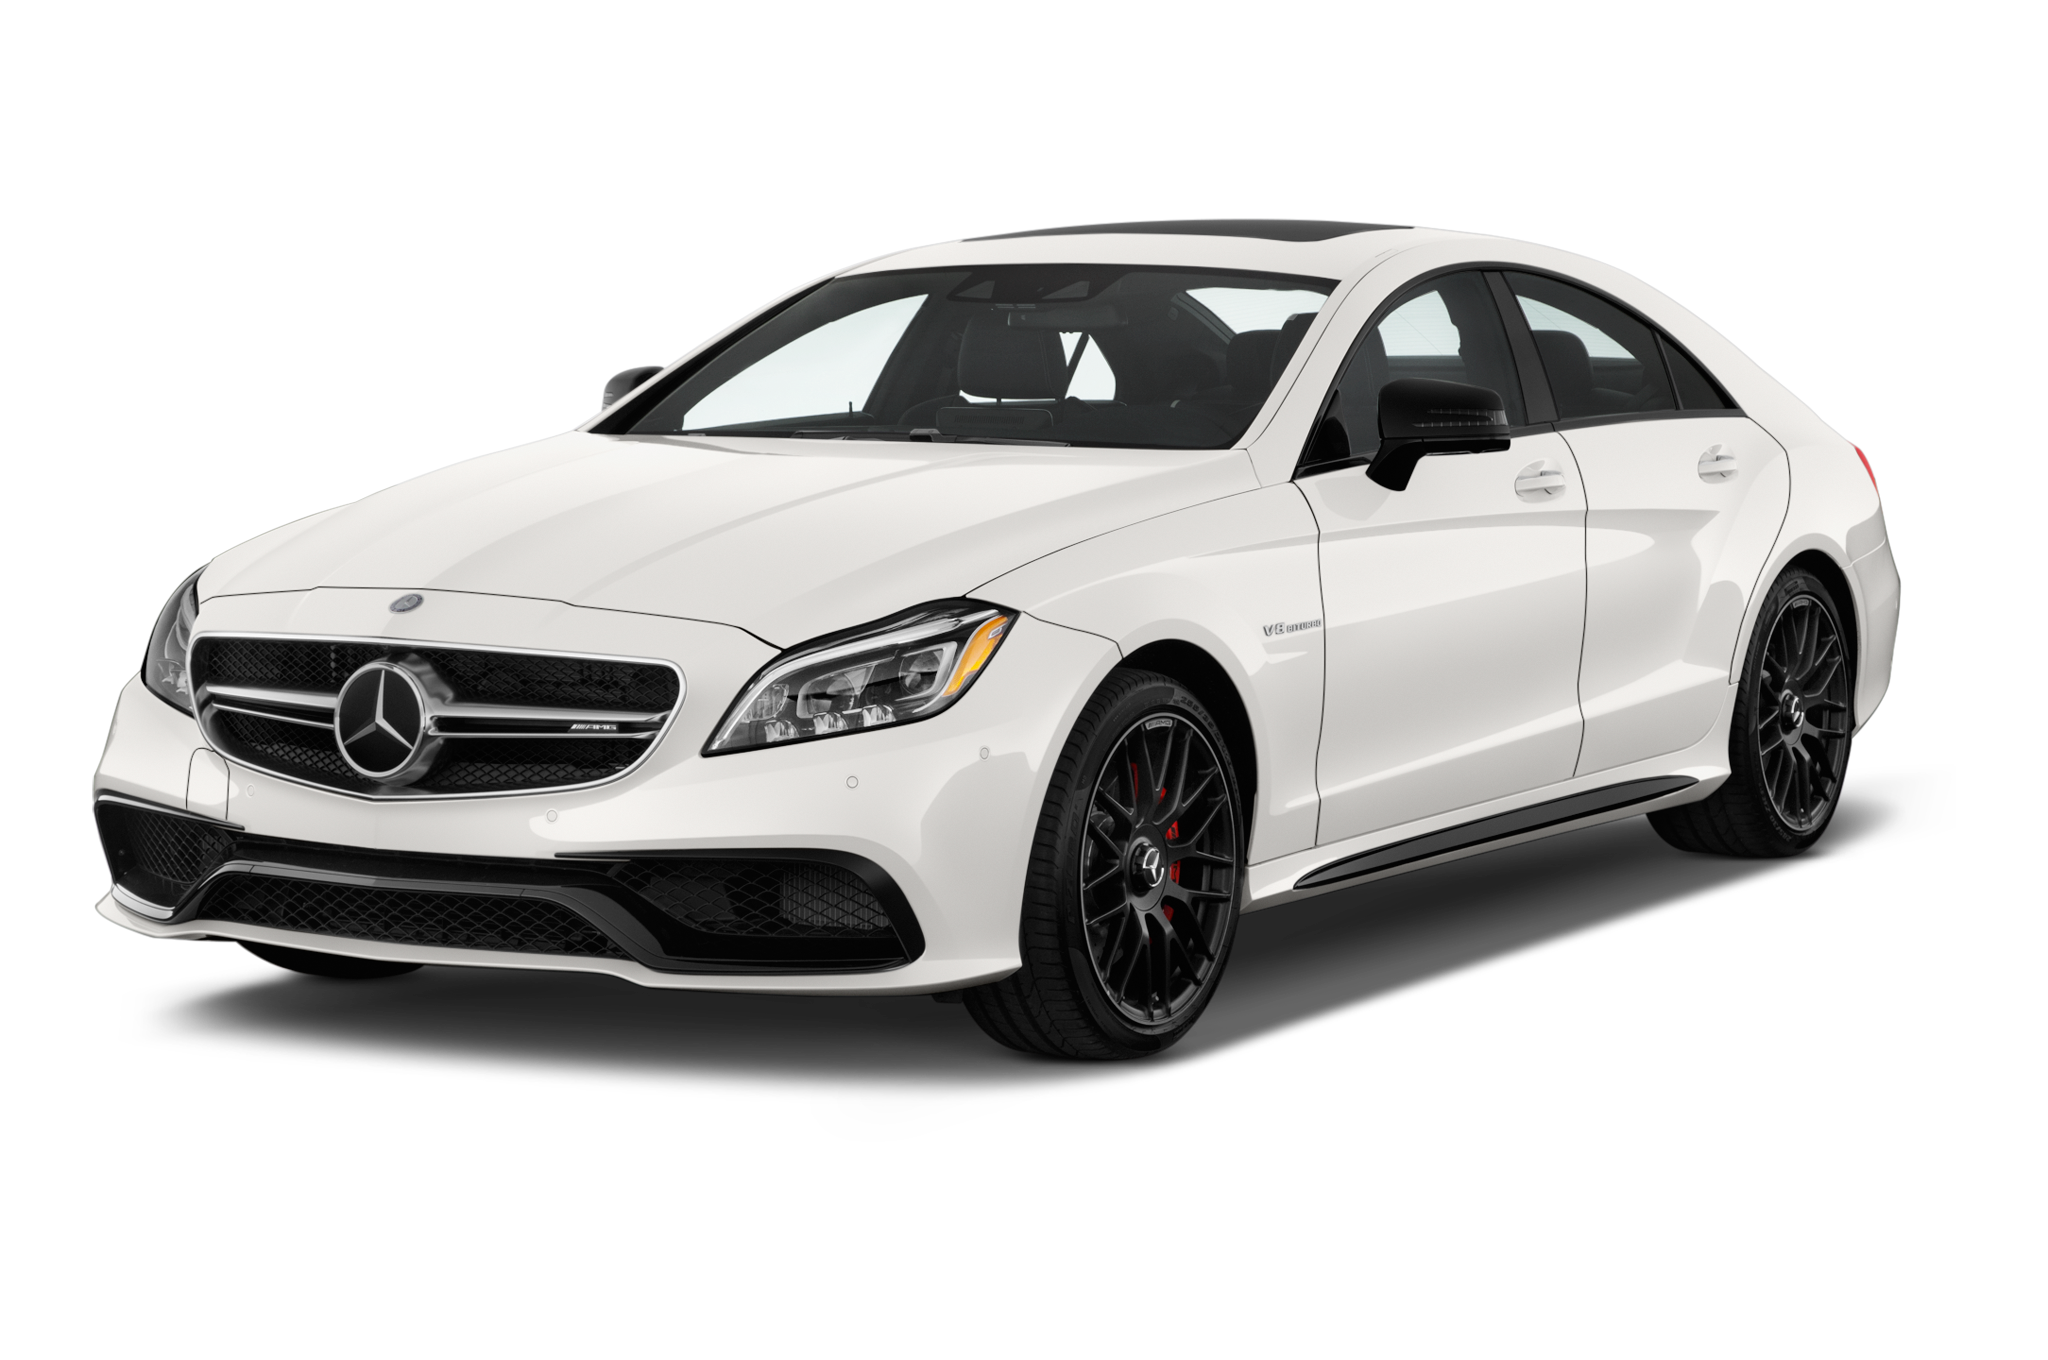 mercedes cls benz class cars front amg cls550 interior coupe angular light models maserati 4matic sedan prices spied camo gorgeous